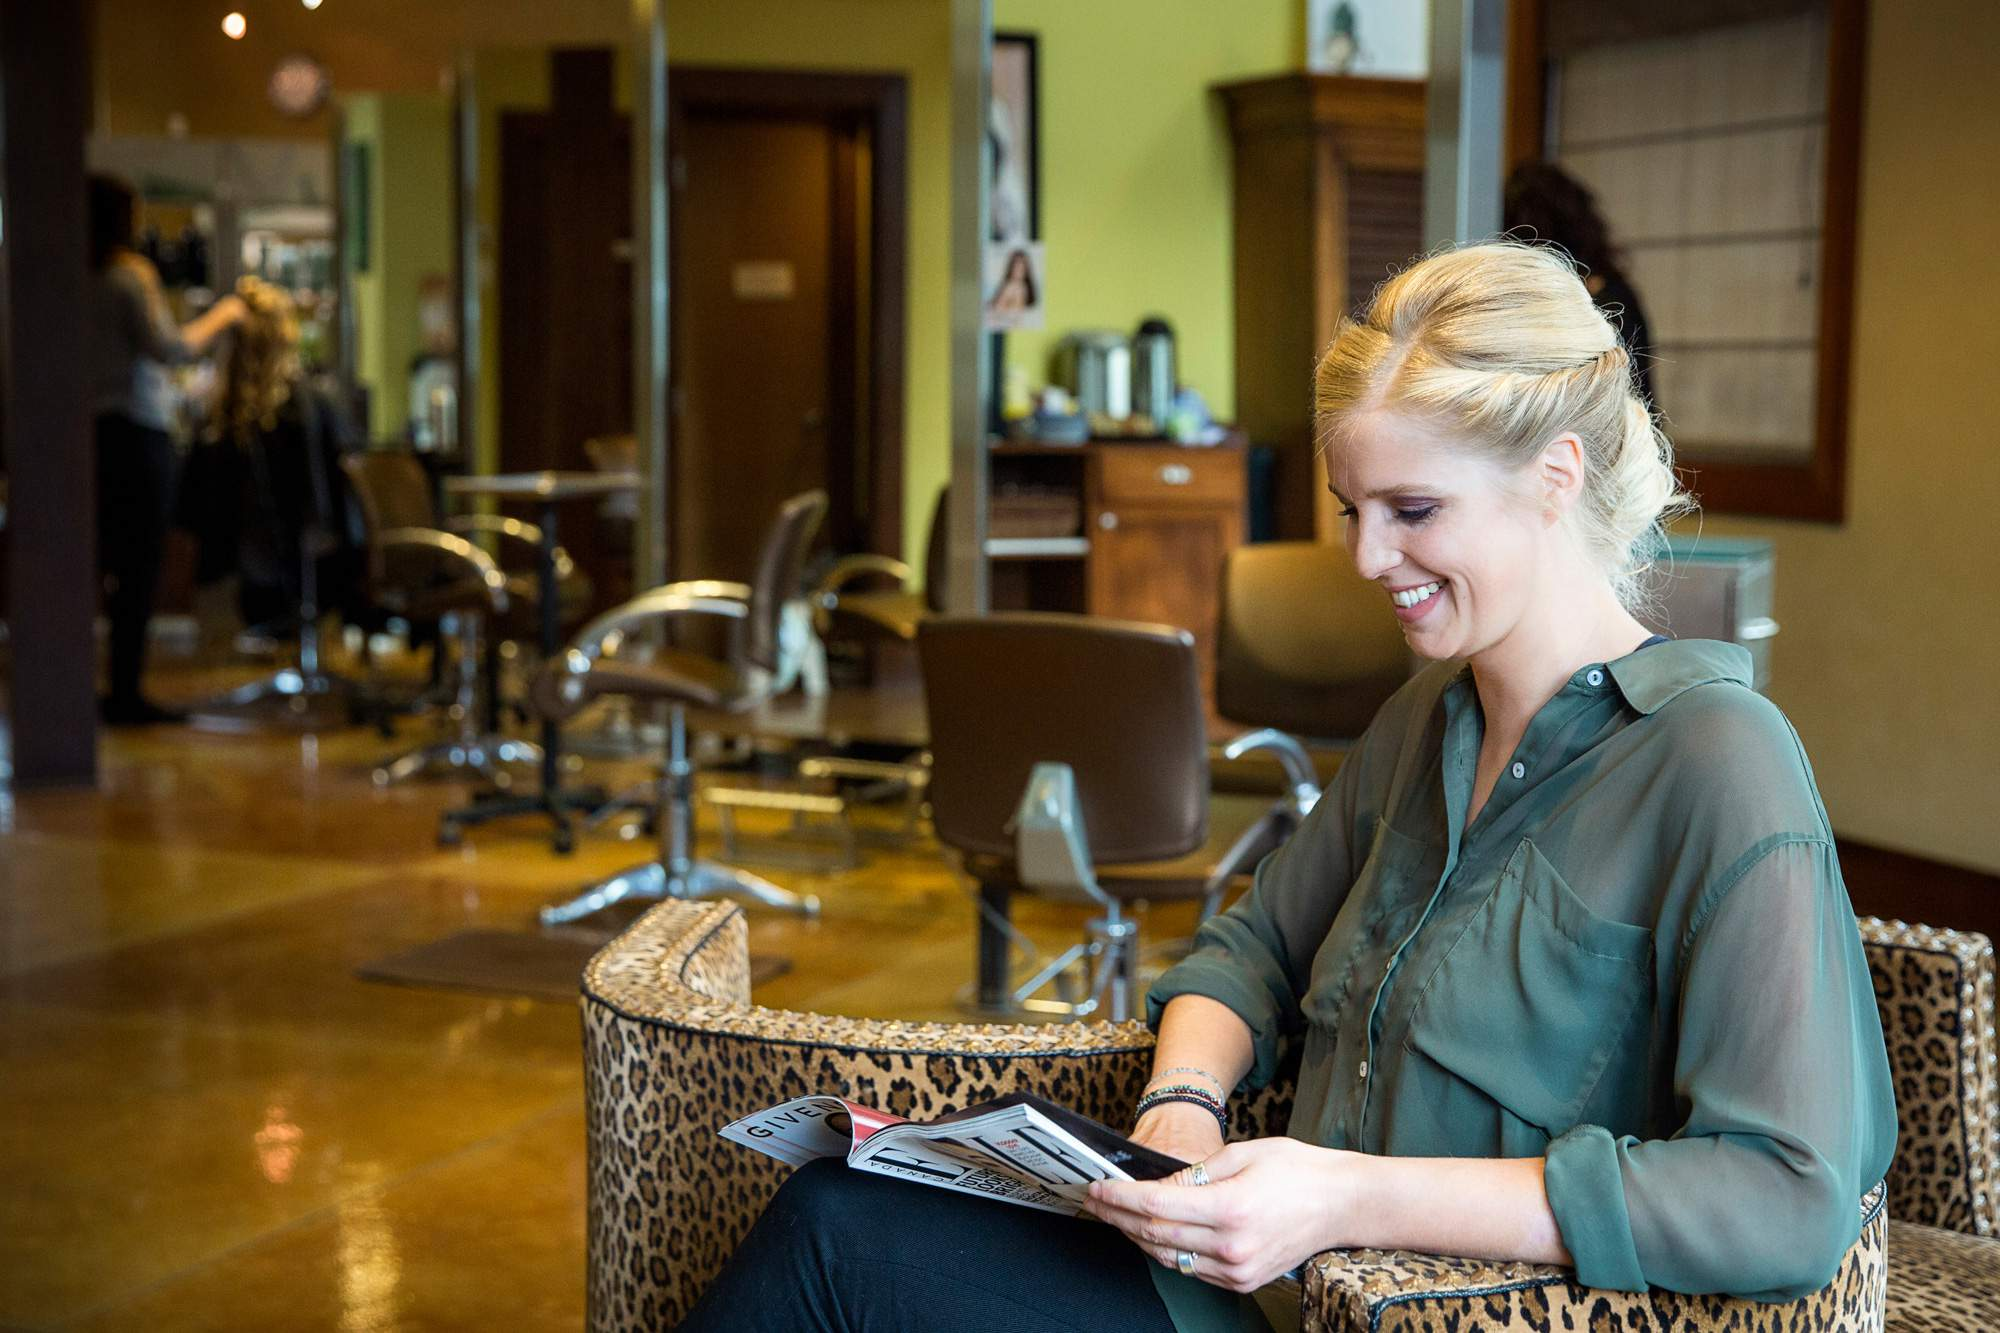 Relax and Enjoy yourself at Rapunzel Salon & Spa - Canmore